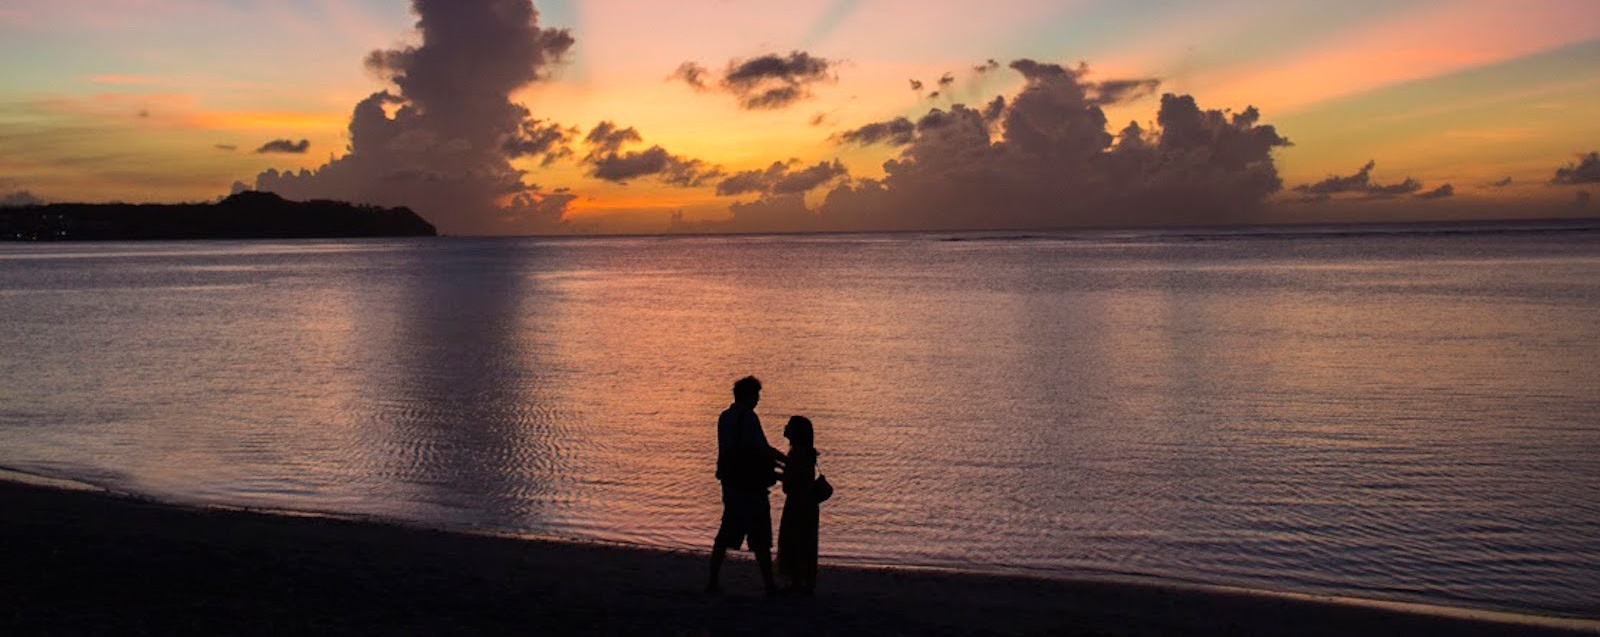 Couple on Tumon Bay, Guam at sunset